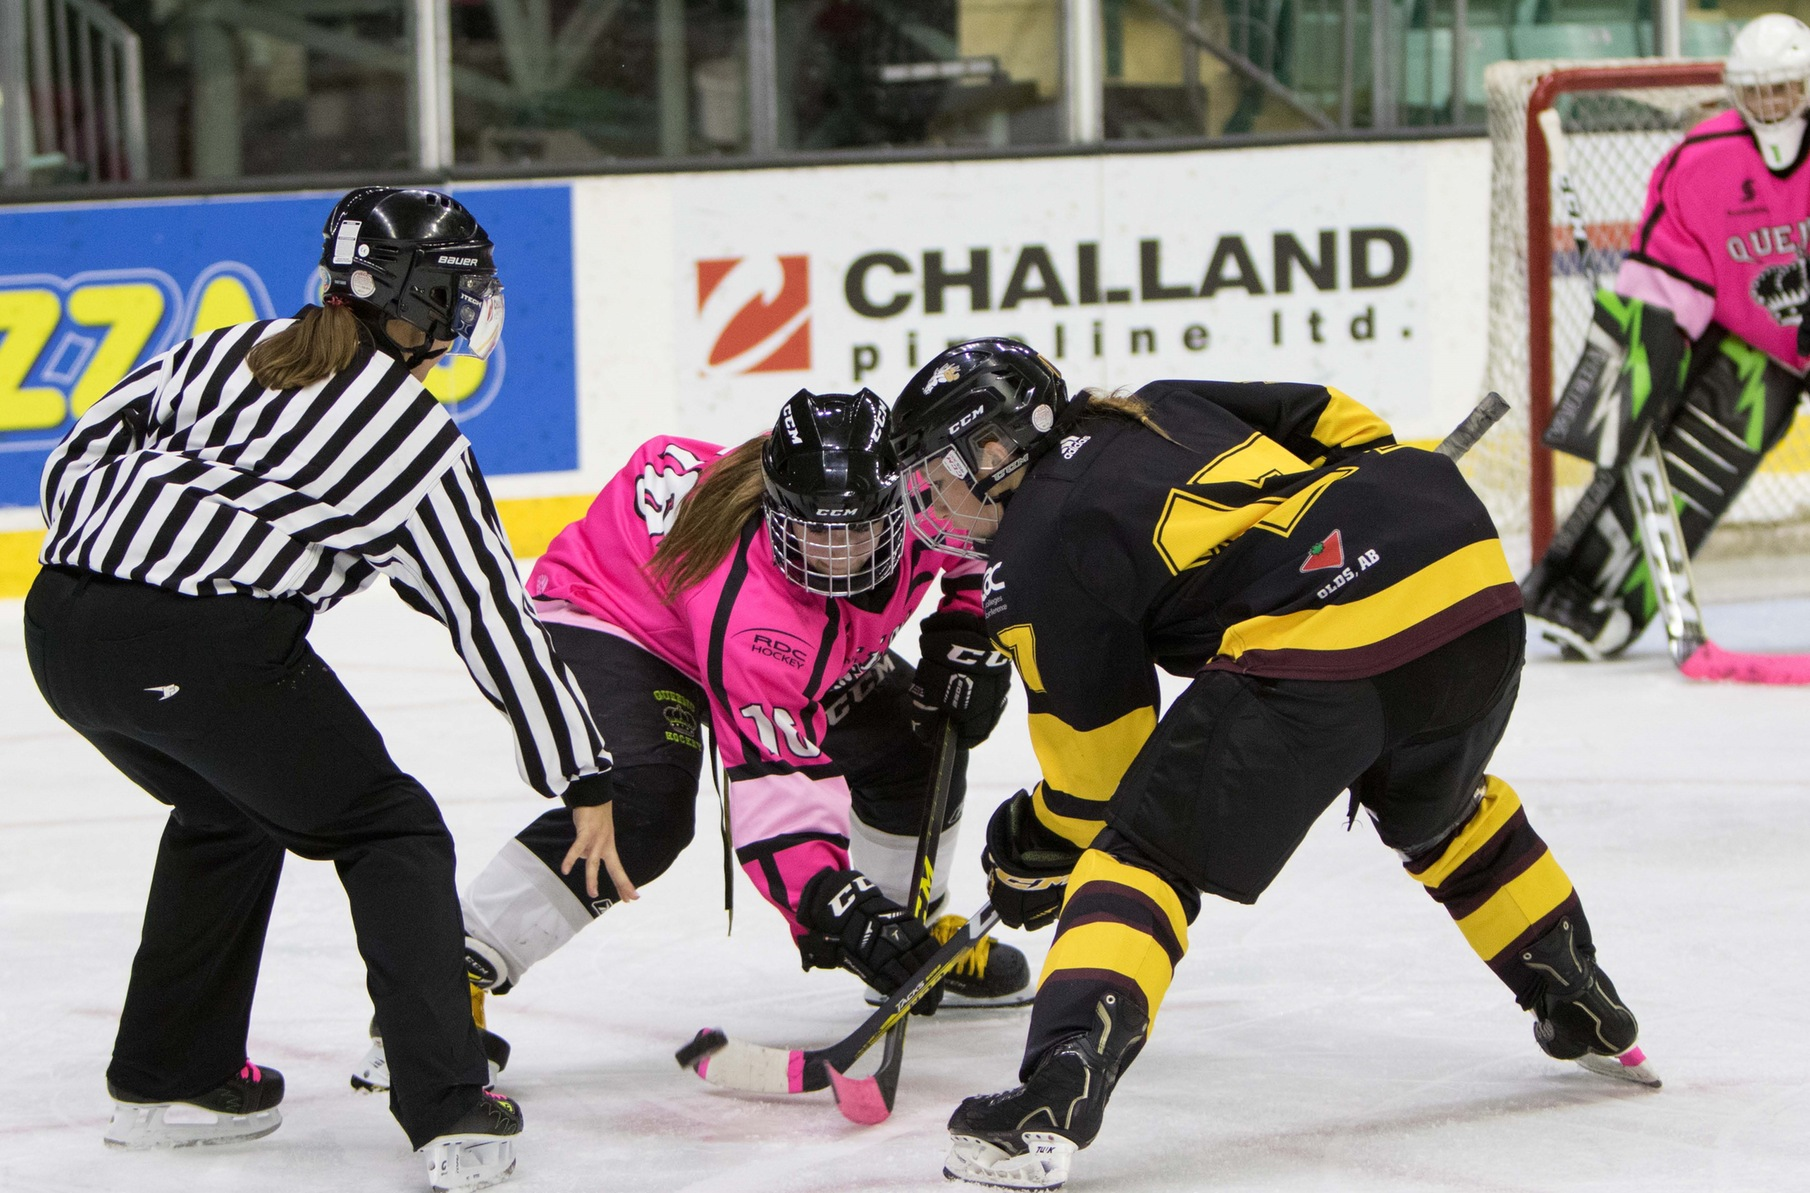 Queens bring home the win for cancer at Pink in the Rink